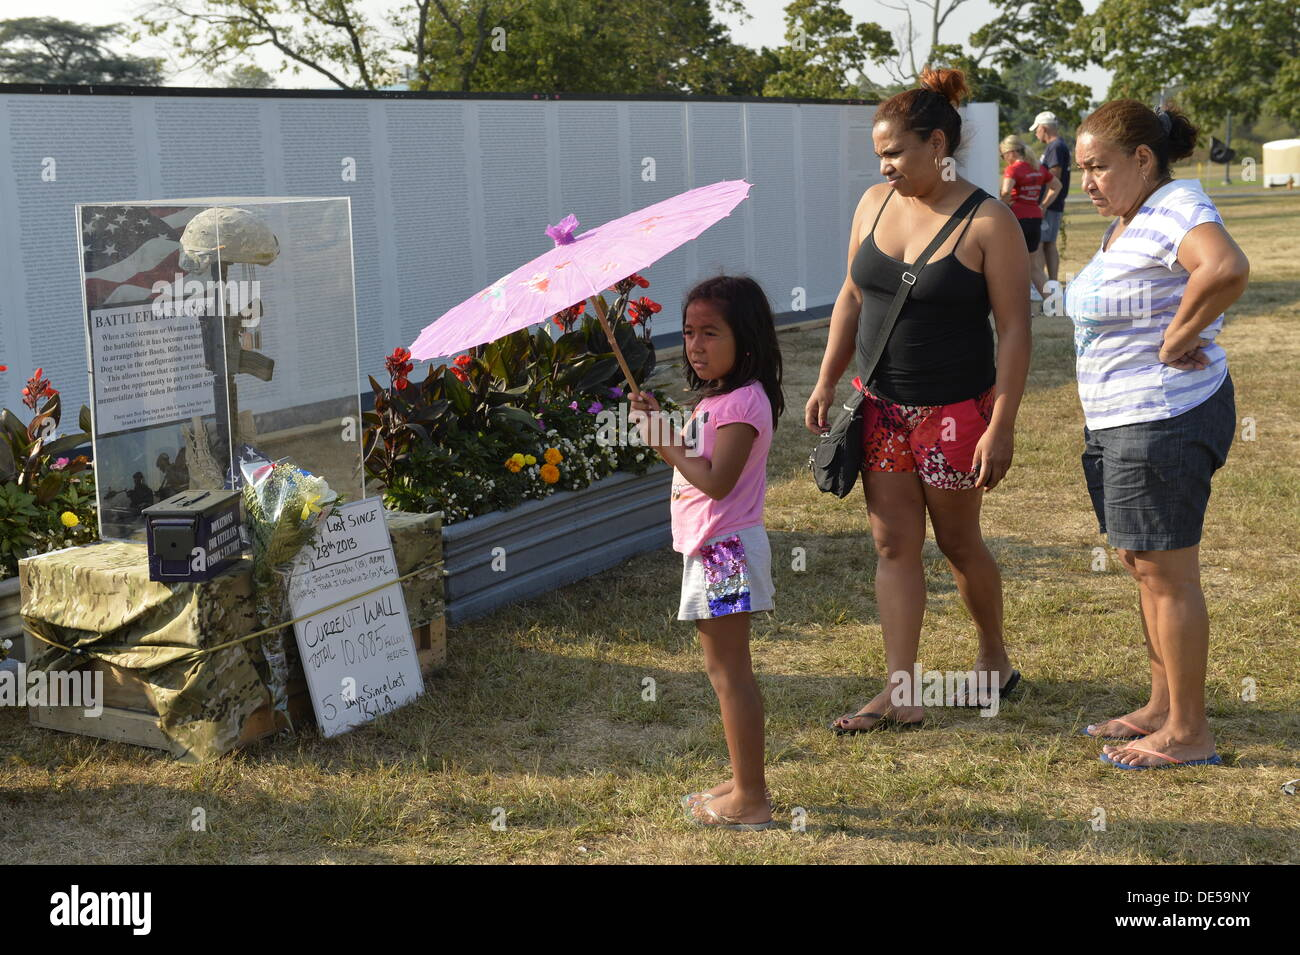 East Meadow, New York, U.S. 11th September 2013. A young girl and family look at the Battlefield Cross display at the Global War on Terror 'Wall of Remembrance' a traveling memorial on display in New York for the first time, at Eisenhower Park on the 12th Anniversary of the terrorist attacks of 9/11. The unique 94 feet long by 6 feet high wall has, on one side, almost 11,000 names of those lost on September 11, 2001, along with heroes and veterans who lost their lives defending freedom of Americans over past 30 years.  © Ann E Parry/Alamy Live News - Stock Image